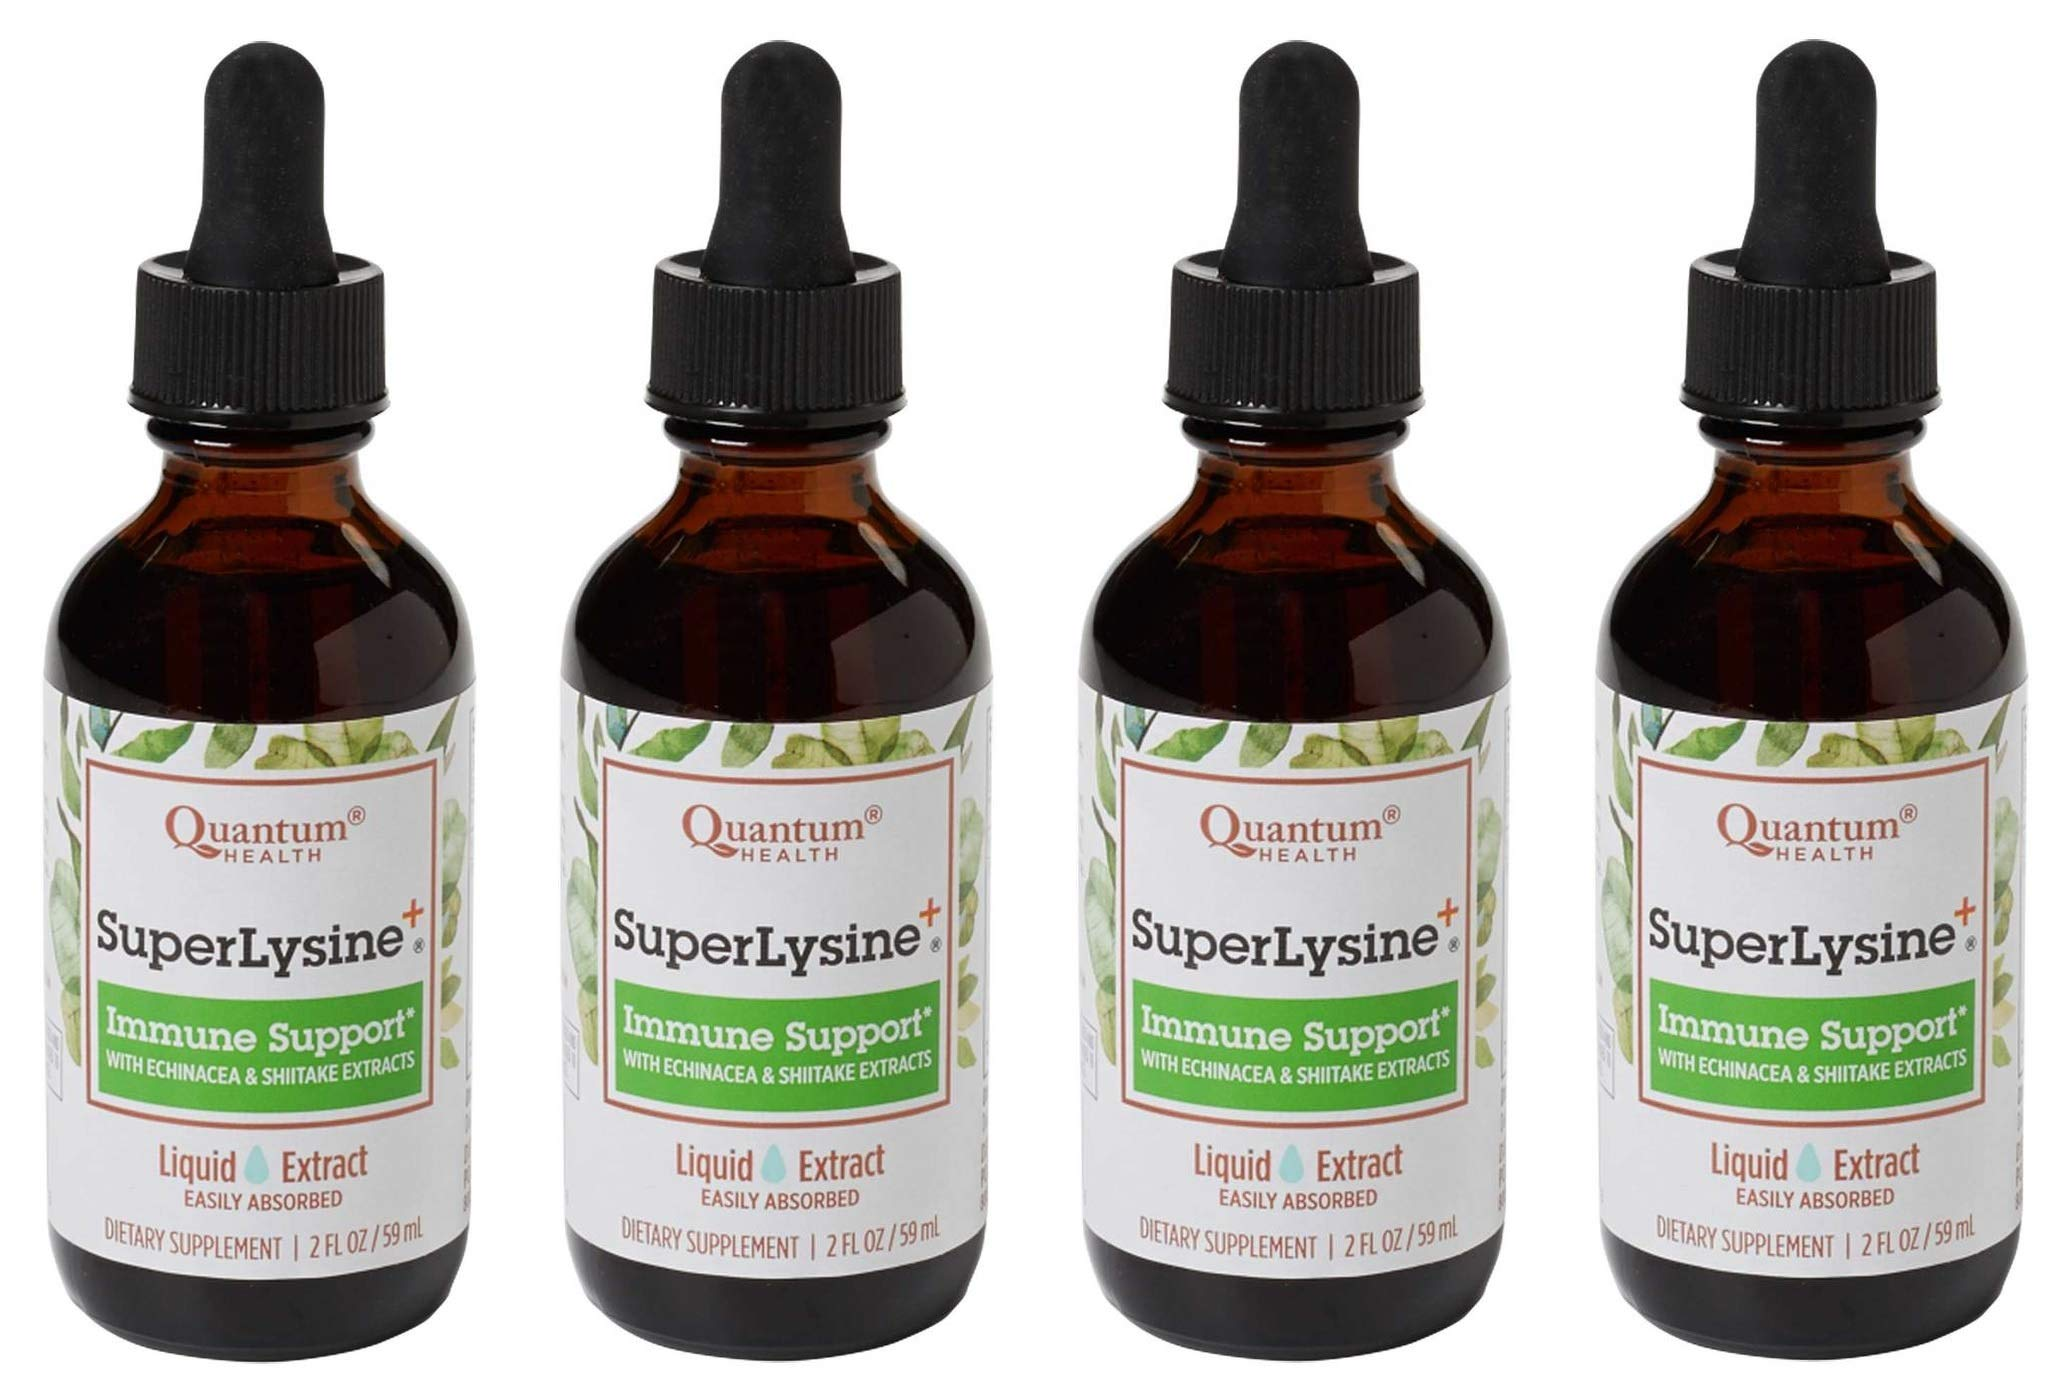 Quantum Super Lysine Plus Liquid Extract - 2 fl oz (Pack of 4) by Quantum (Image #1)